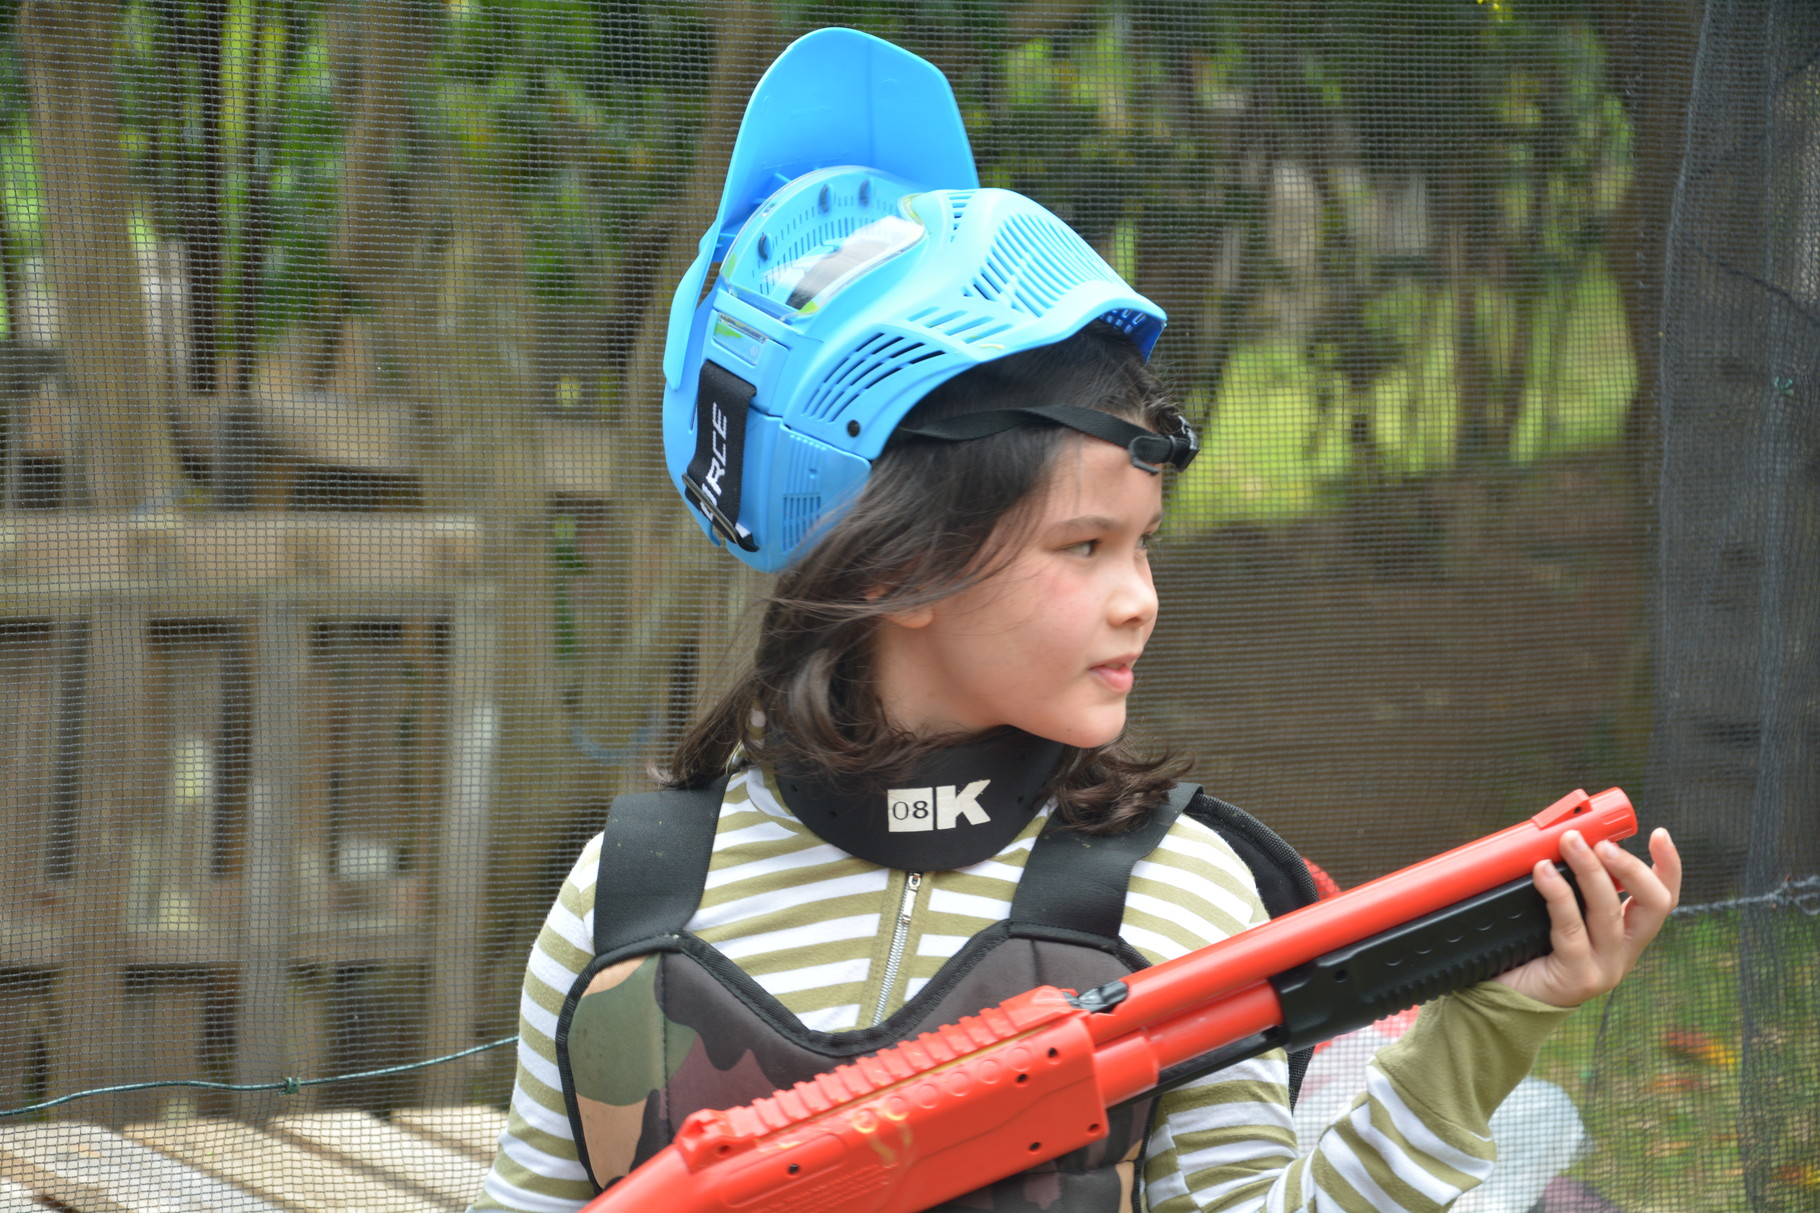 paintball enfant à partir de 7 ans